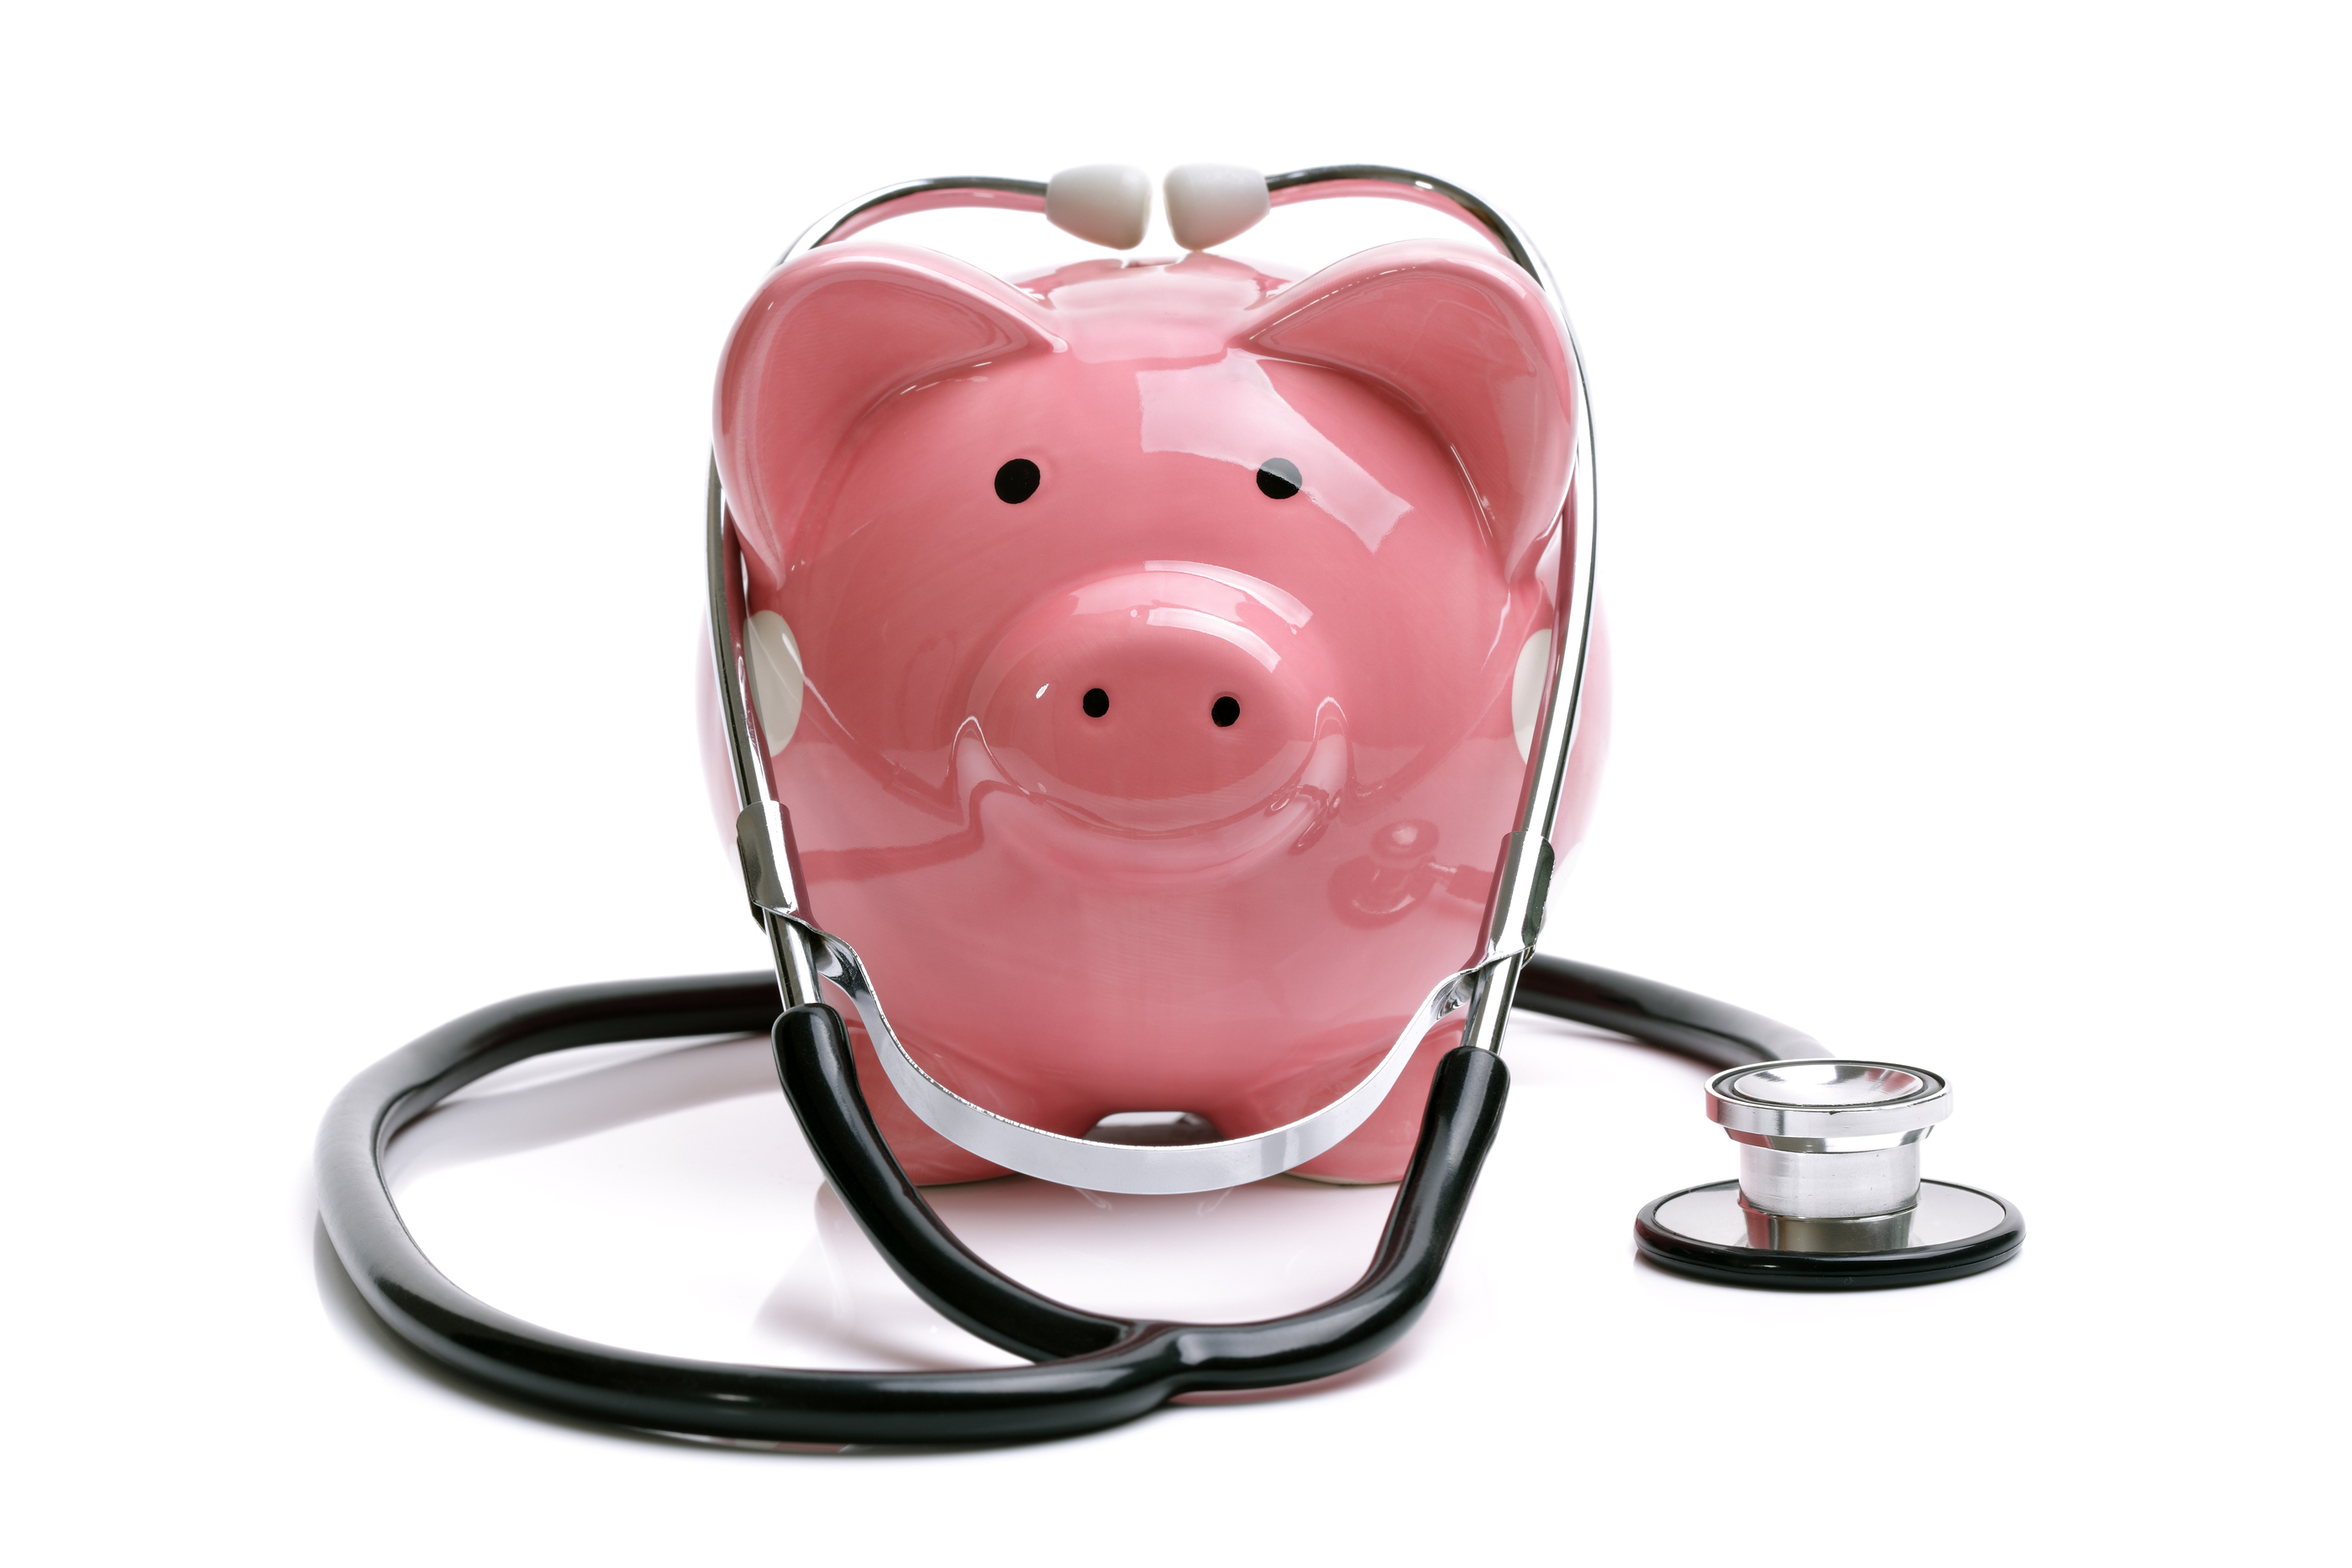 Make health expenses business deductible